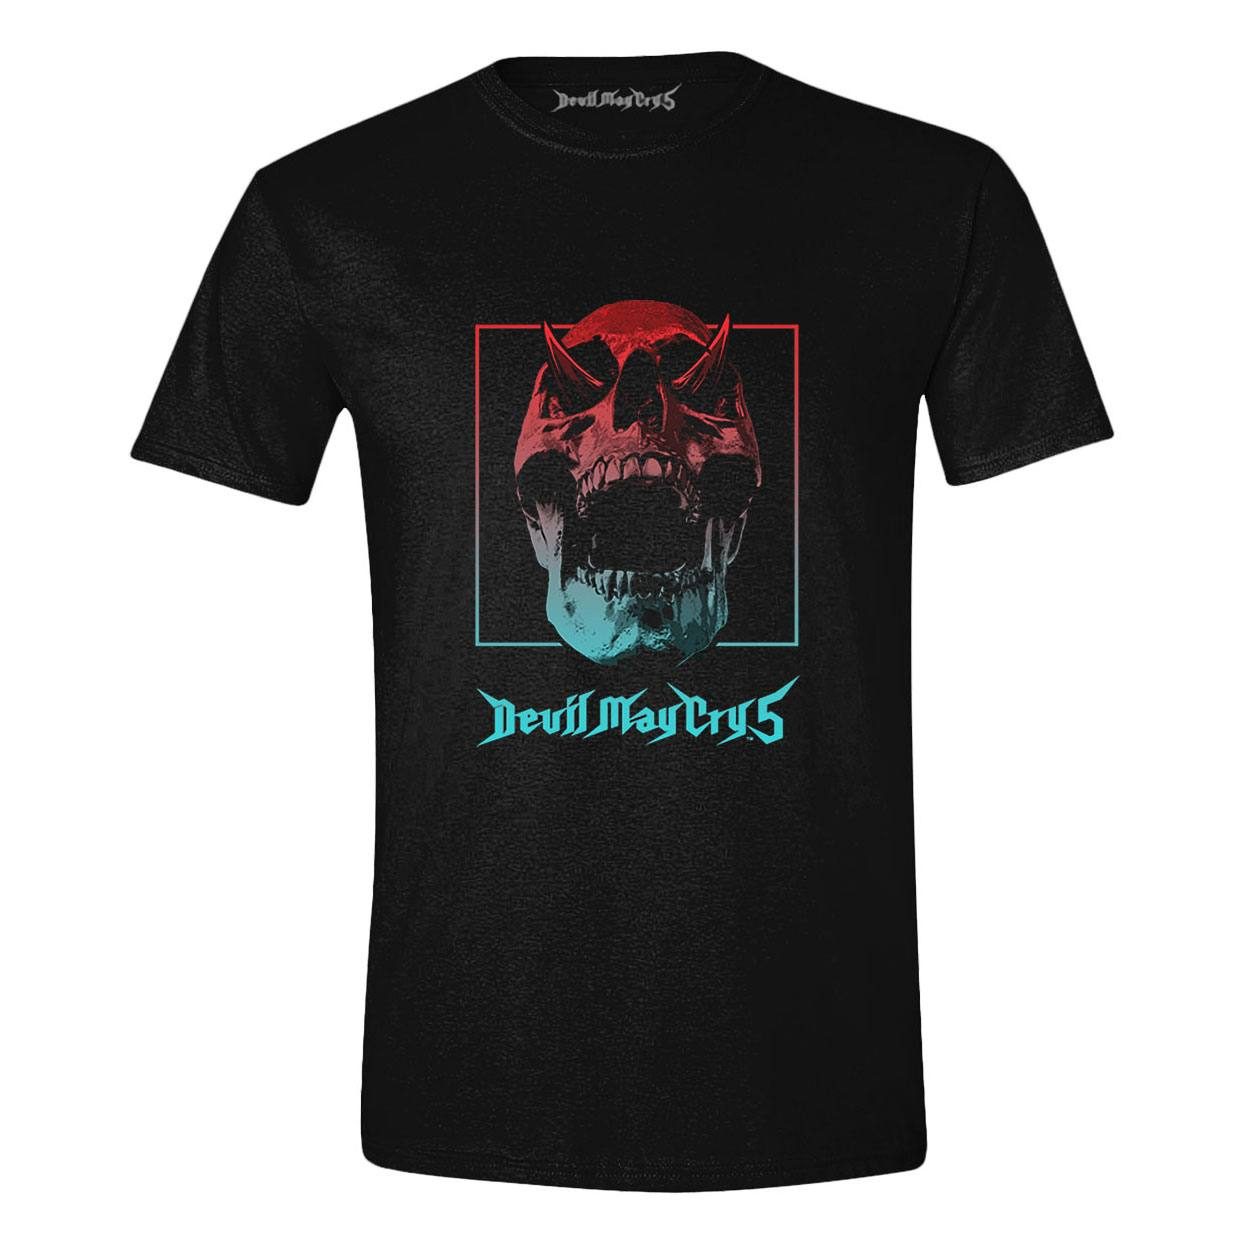 Devil May Cry 5 T-Shirt Skull Gradient Size L